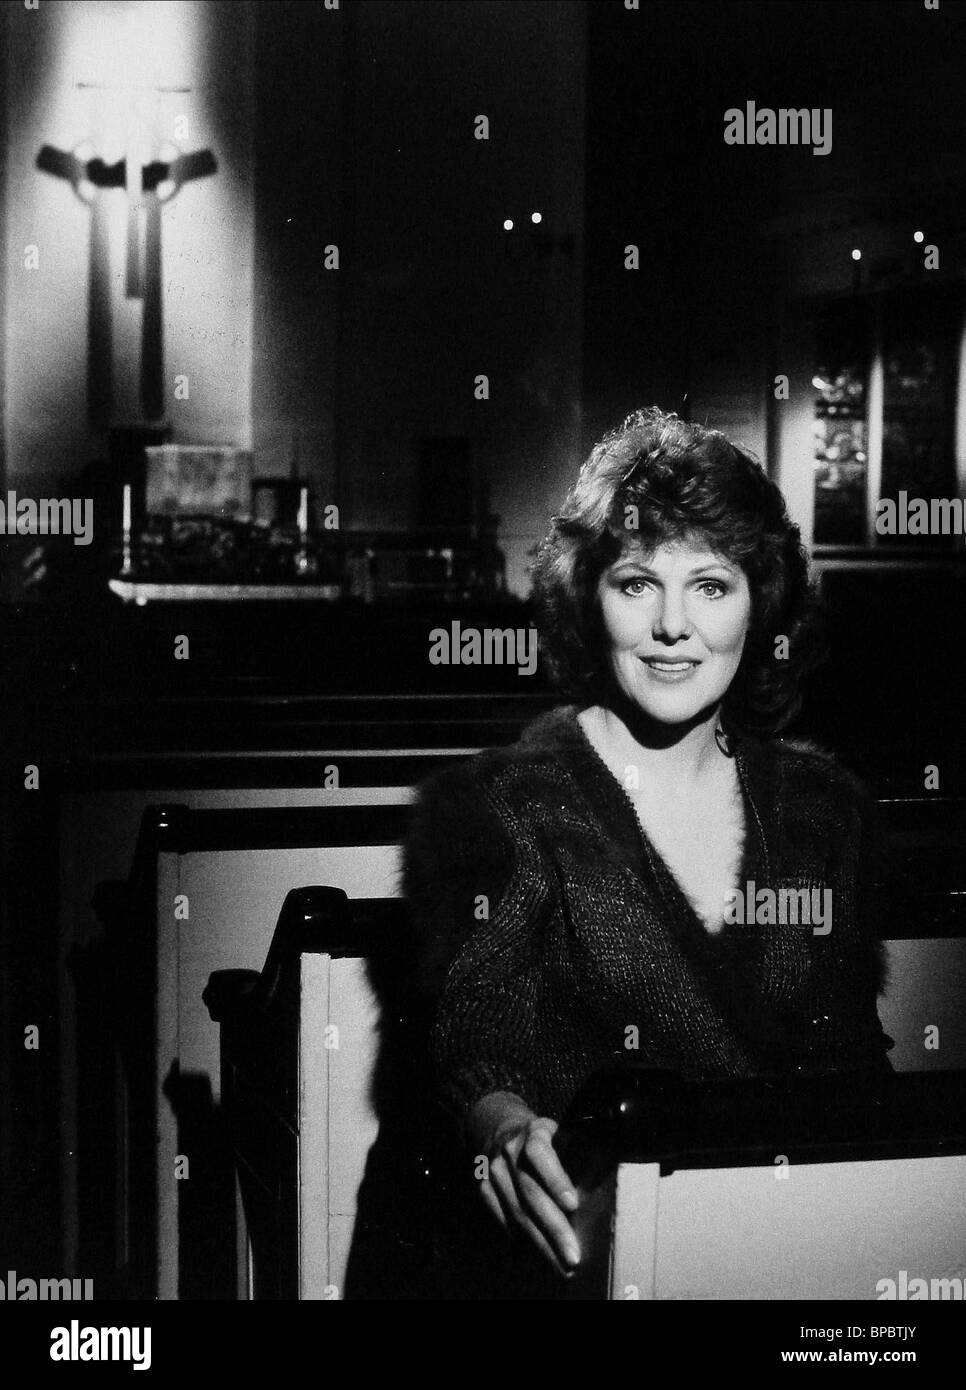 LYNN REDGRAVE A LOST HISTORY (1984) - Stock Image